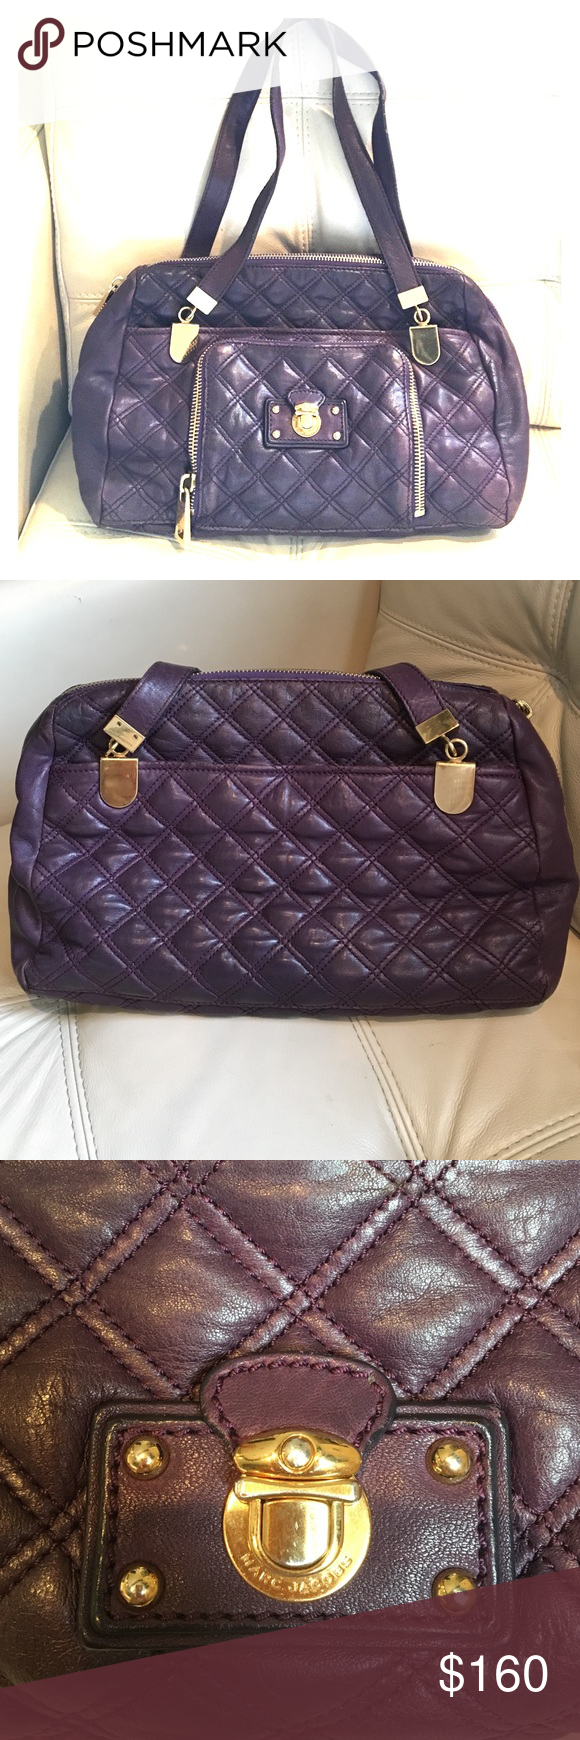 6d61a80a38e9 Marc Jacobs Quilted Spring Street Tote Bag Authentic